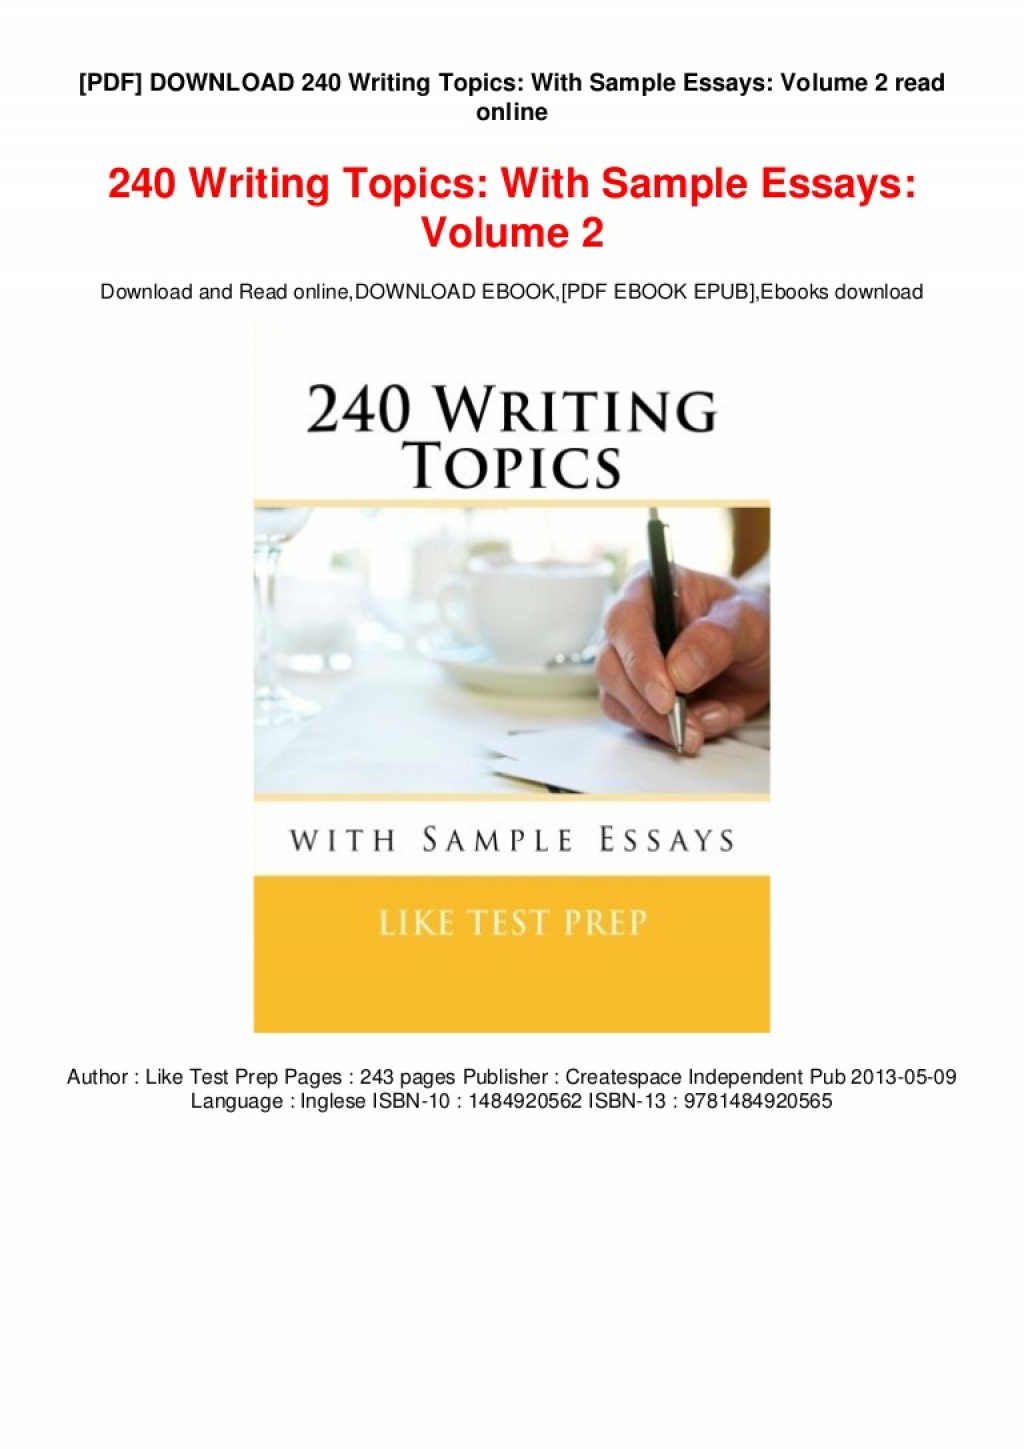 024 Essays Online To Read Pdf Download Writing Topics With Sample Volume Thumbnail Essay Remarkable Free Best Large